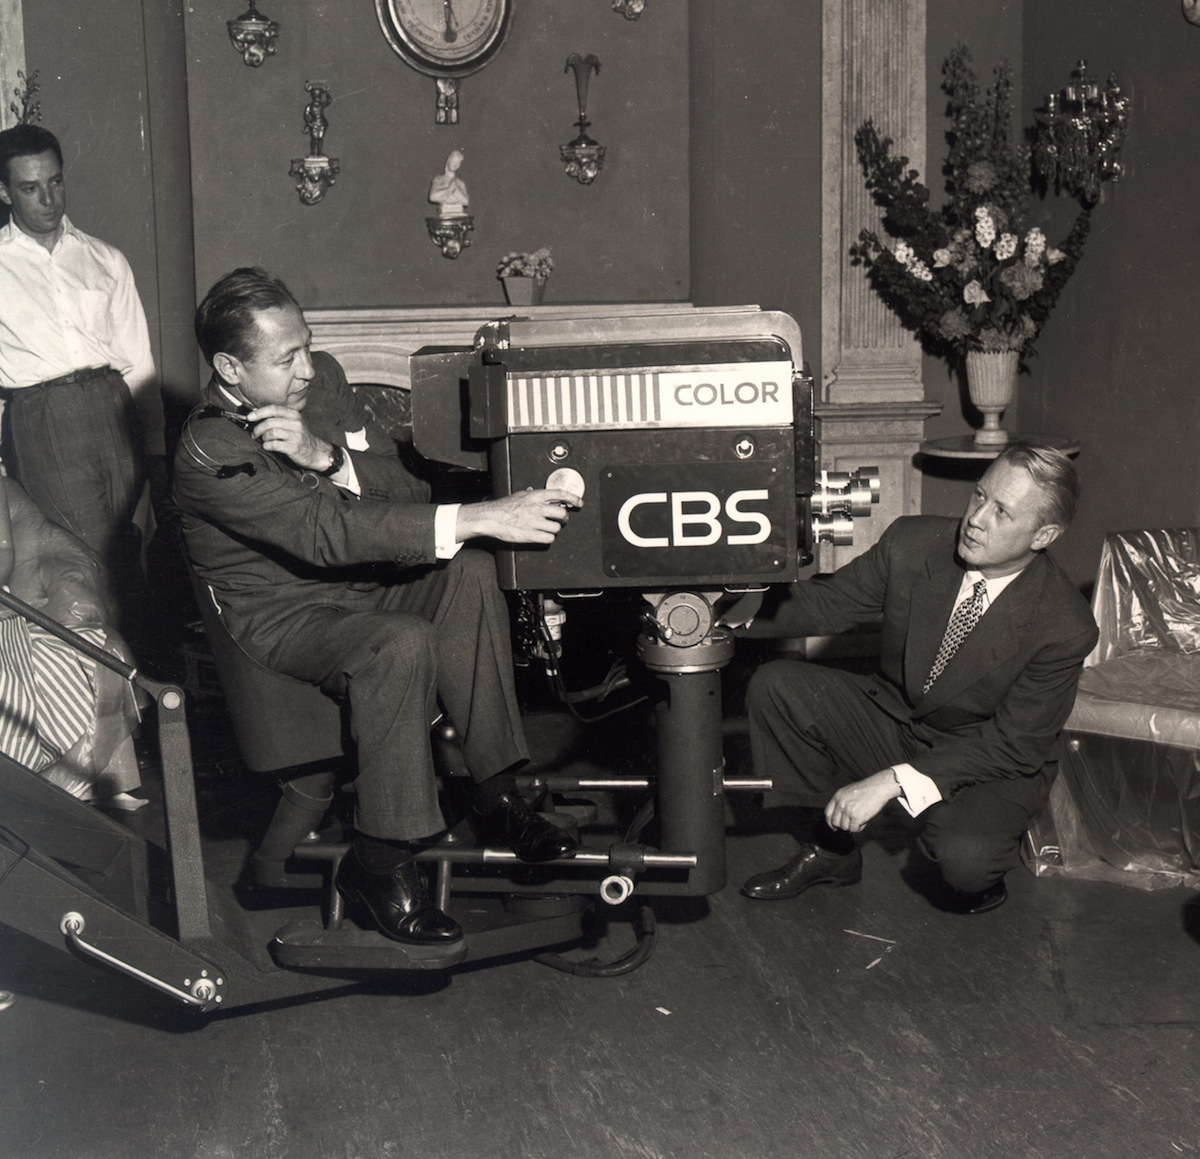 William S. Paley and Dr. Frank Stanton (right) with a color CBS television camera. 1951.